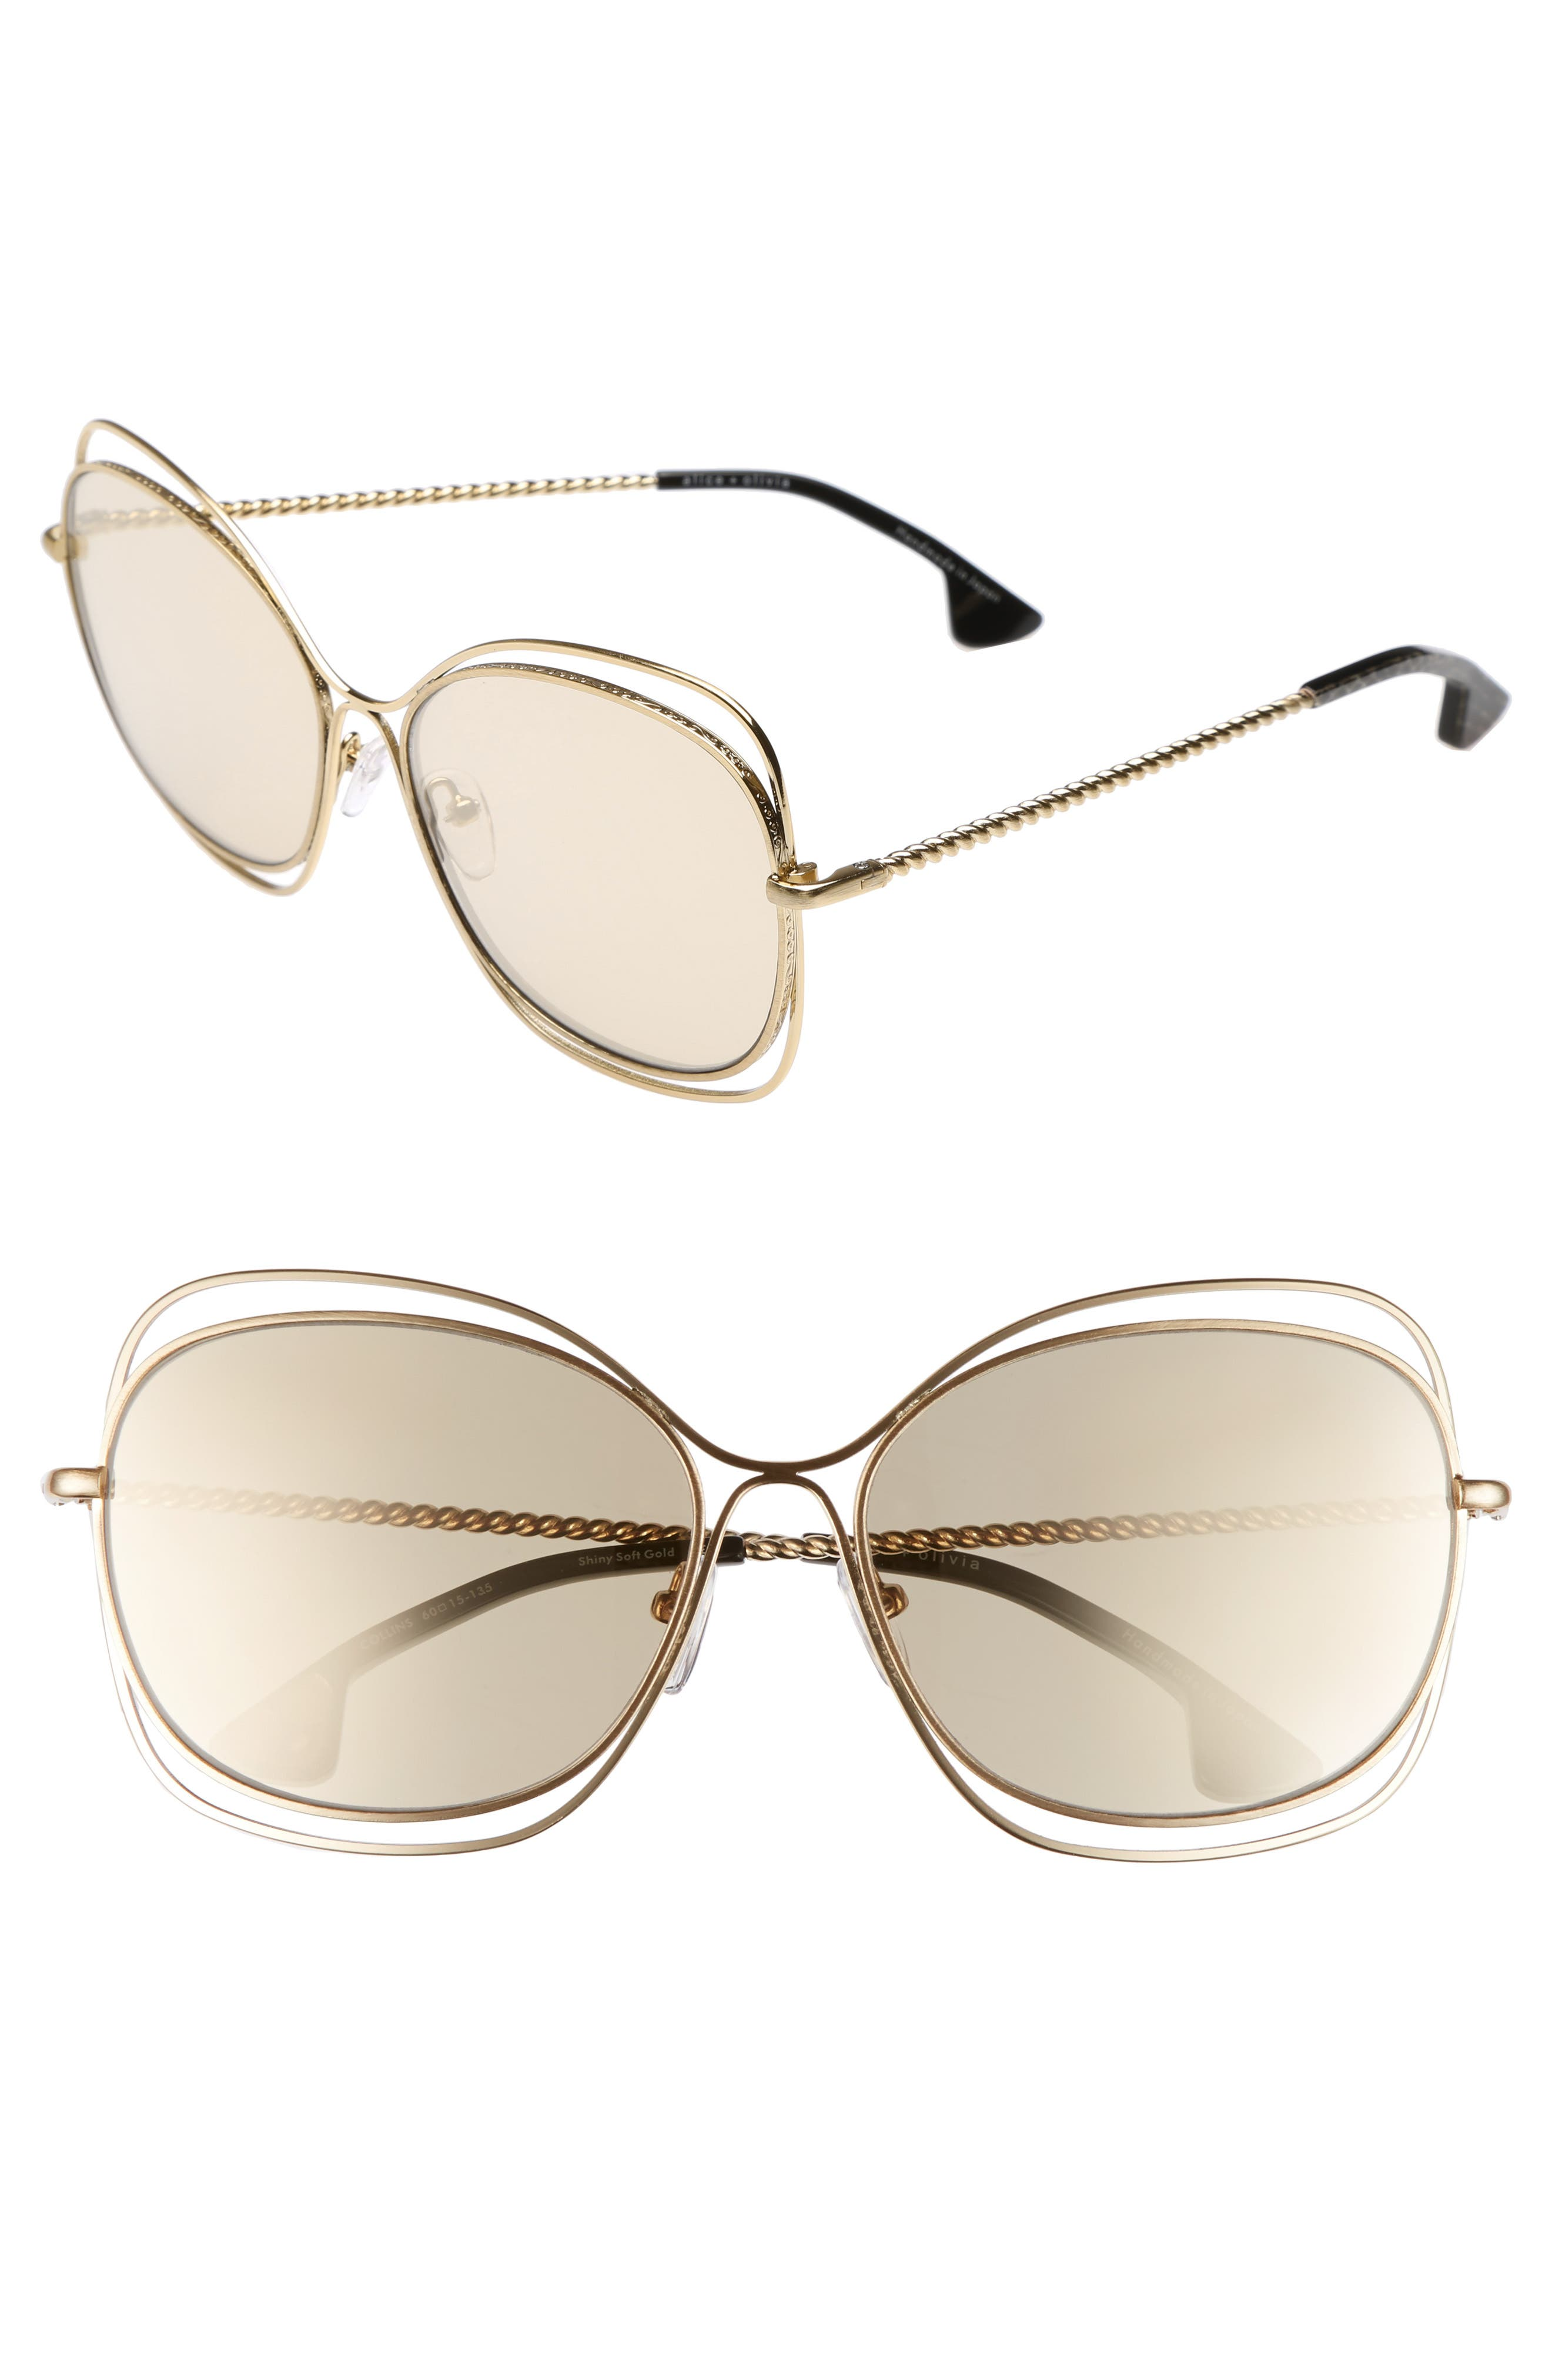 Collins 60mm Butterfly Sunglasses,                             Main thumbnail 1, color,                             Soft Gold